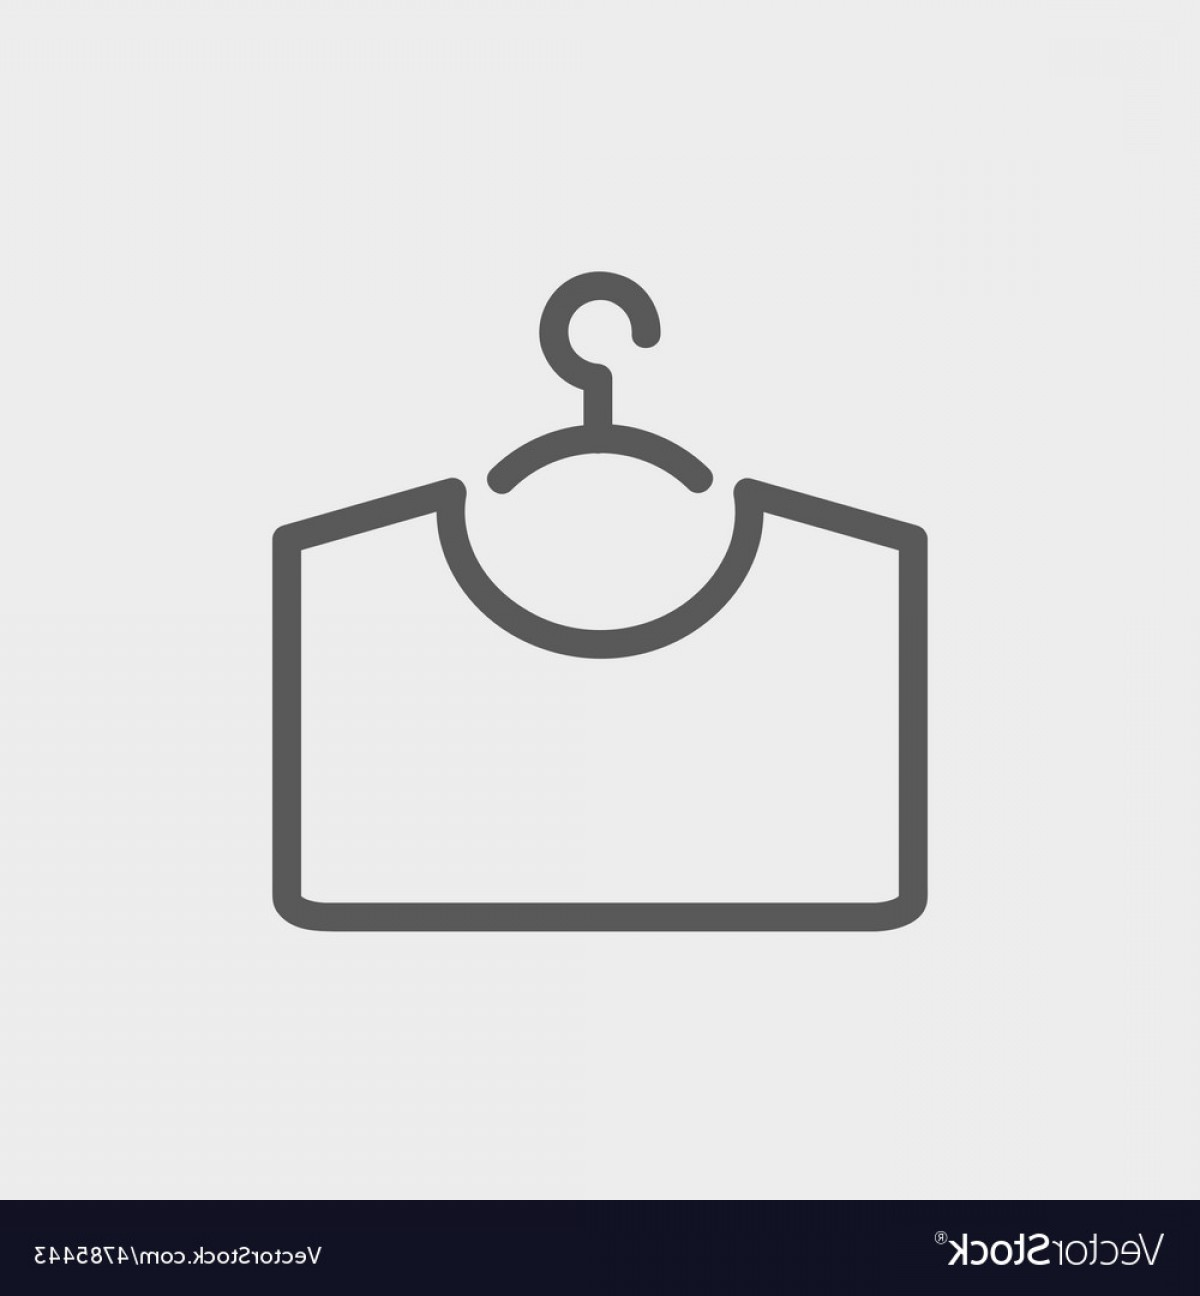 Shirt Hanger Icon Vector: Shirt On Hanger Thin Line Icon Vector